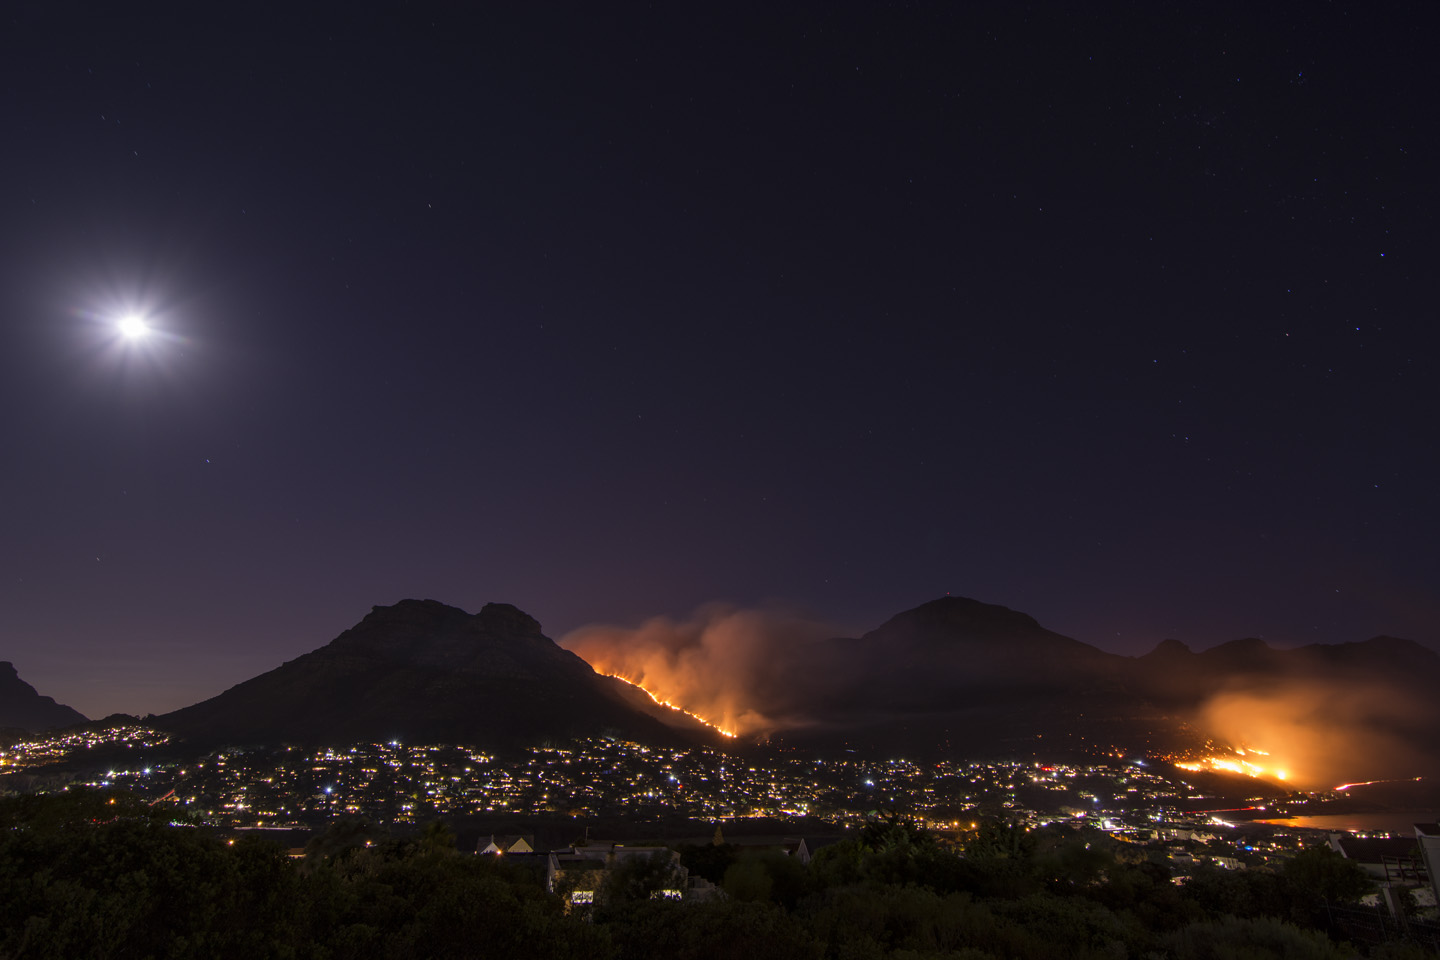 Cape-Town-Fire-March-2015-image-by-Greg-Hillyard-Photography-on-Orms-Connect-Photography-Blog